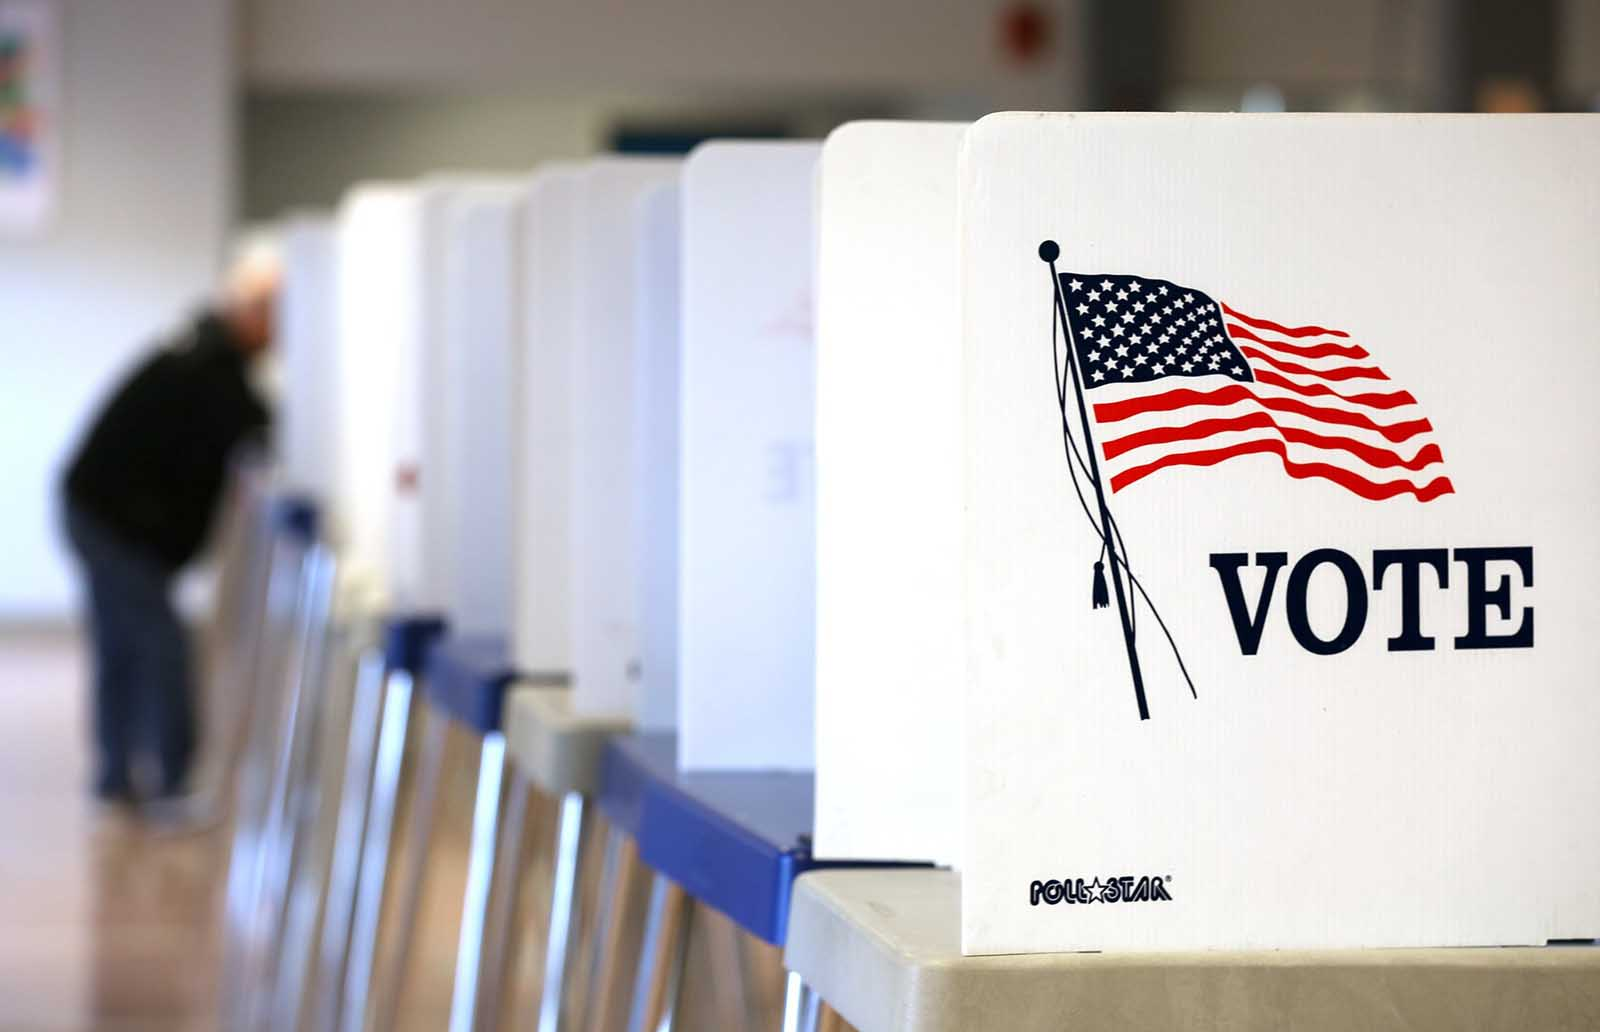 With talks of election fraud in the 2020 U.S. Presidential election, many are wondering if this has happened before. Here's past cases of voting fraud.